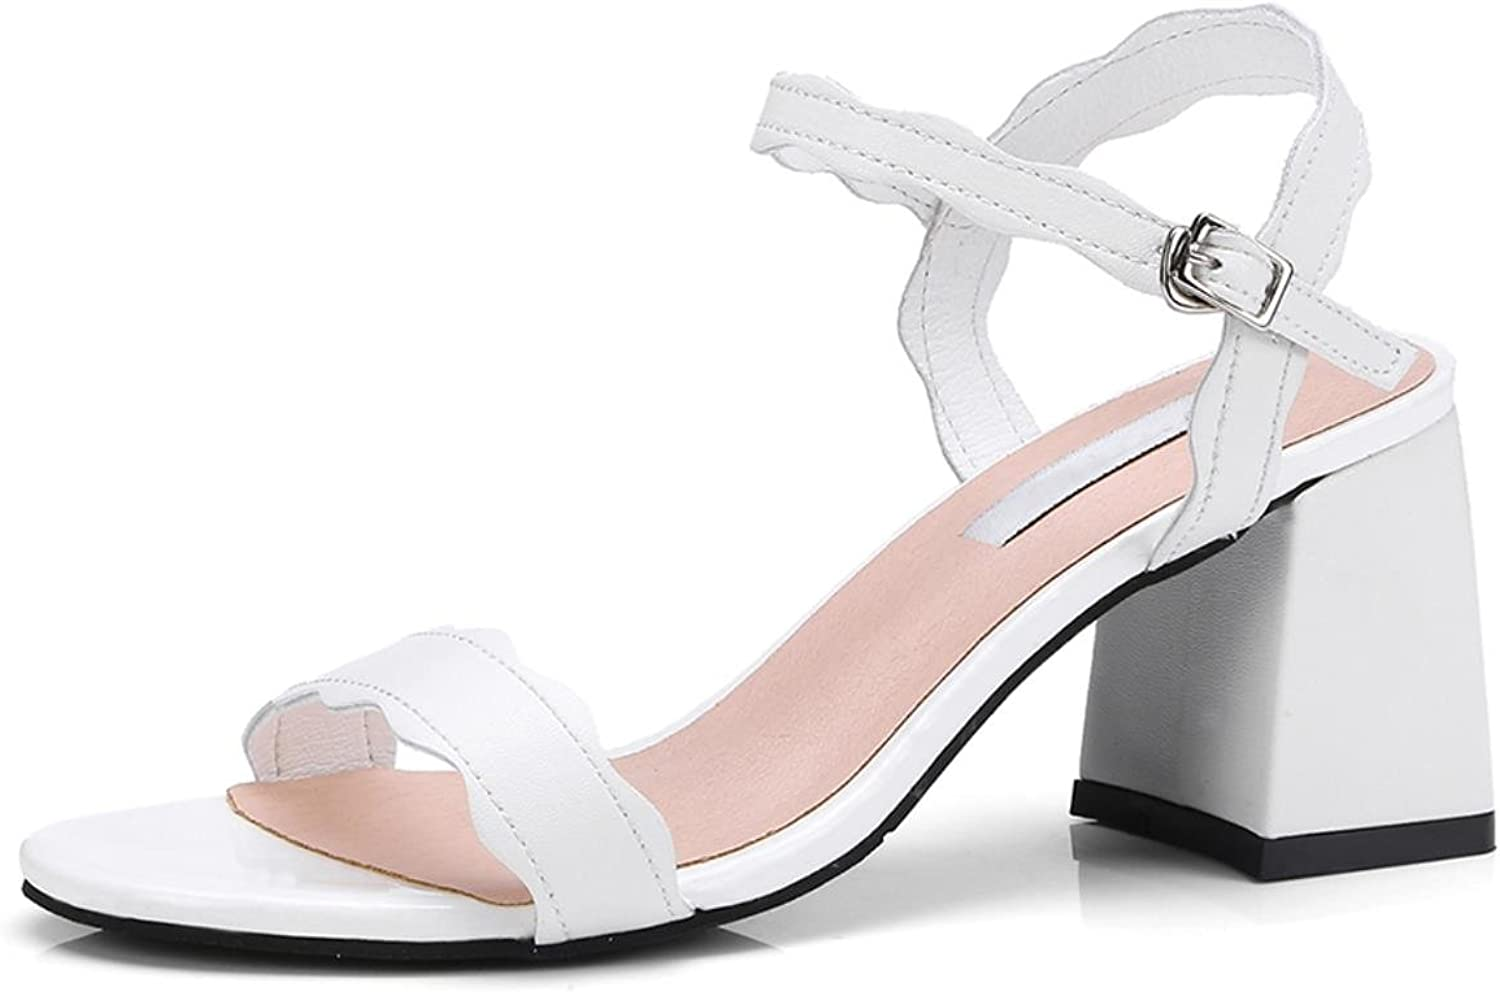 Best Quality Genuine Leather Ankle-Strap Fashion Summer Woman Sandals